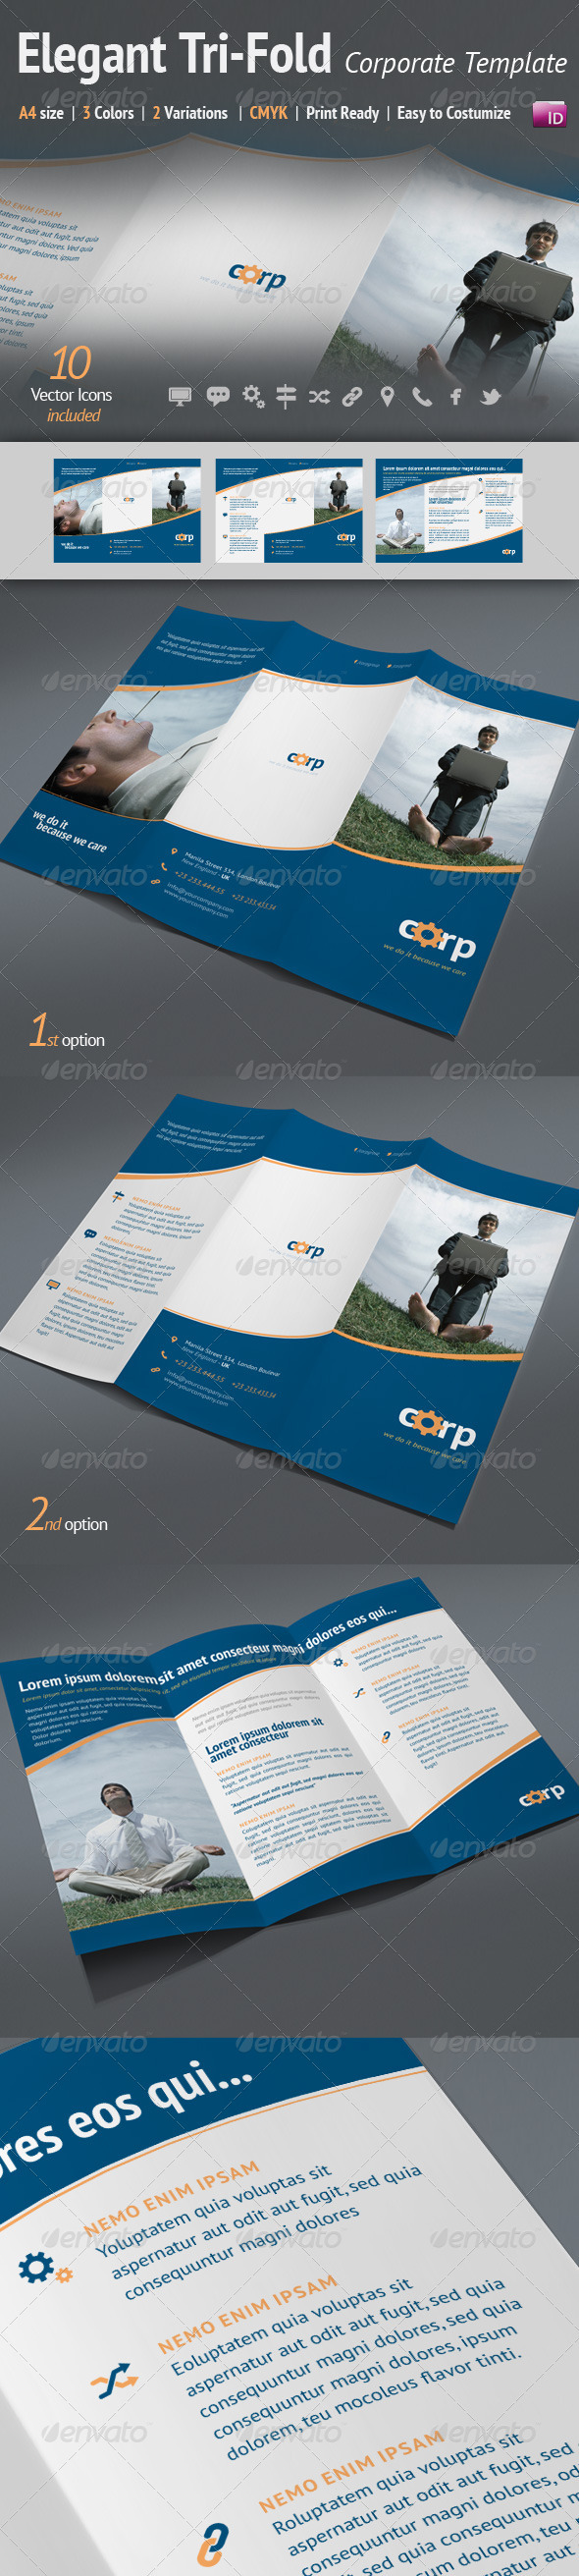 A4 Tri-Fold Elegant Corporate Template | 3 Colors - Corporate Brochures